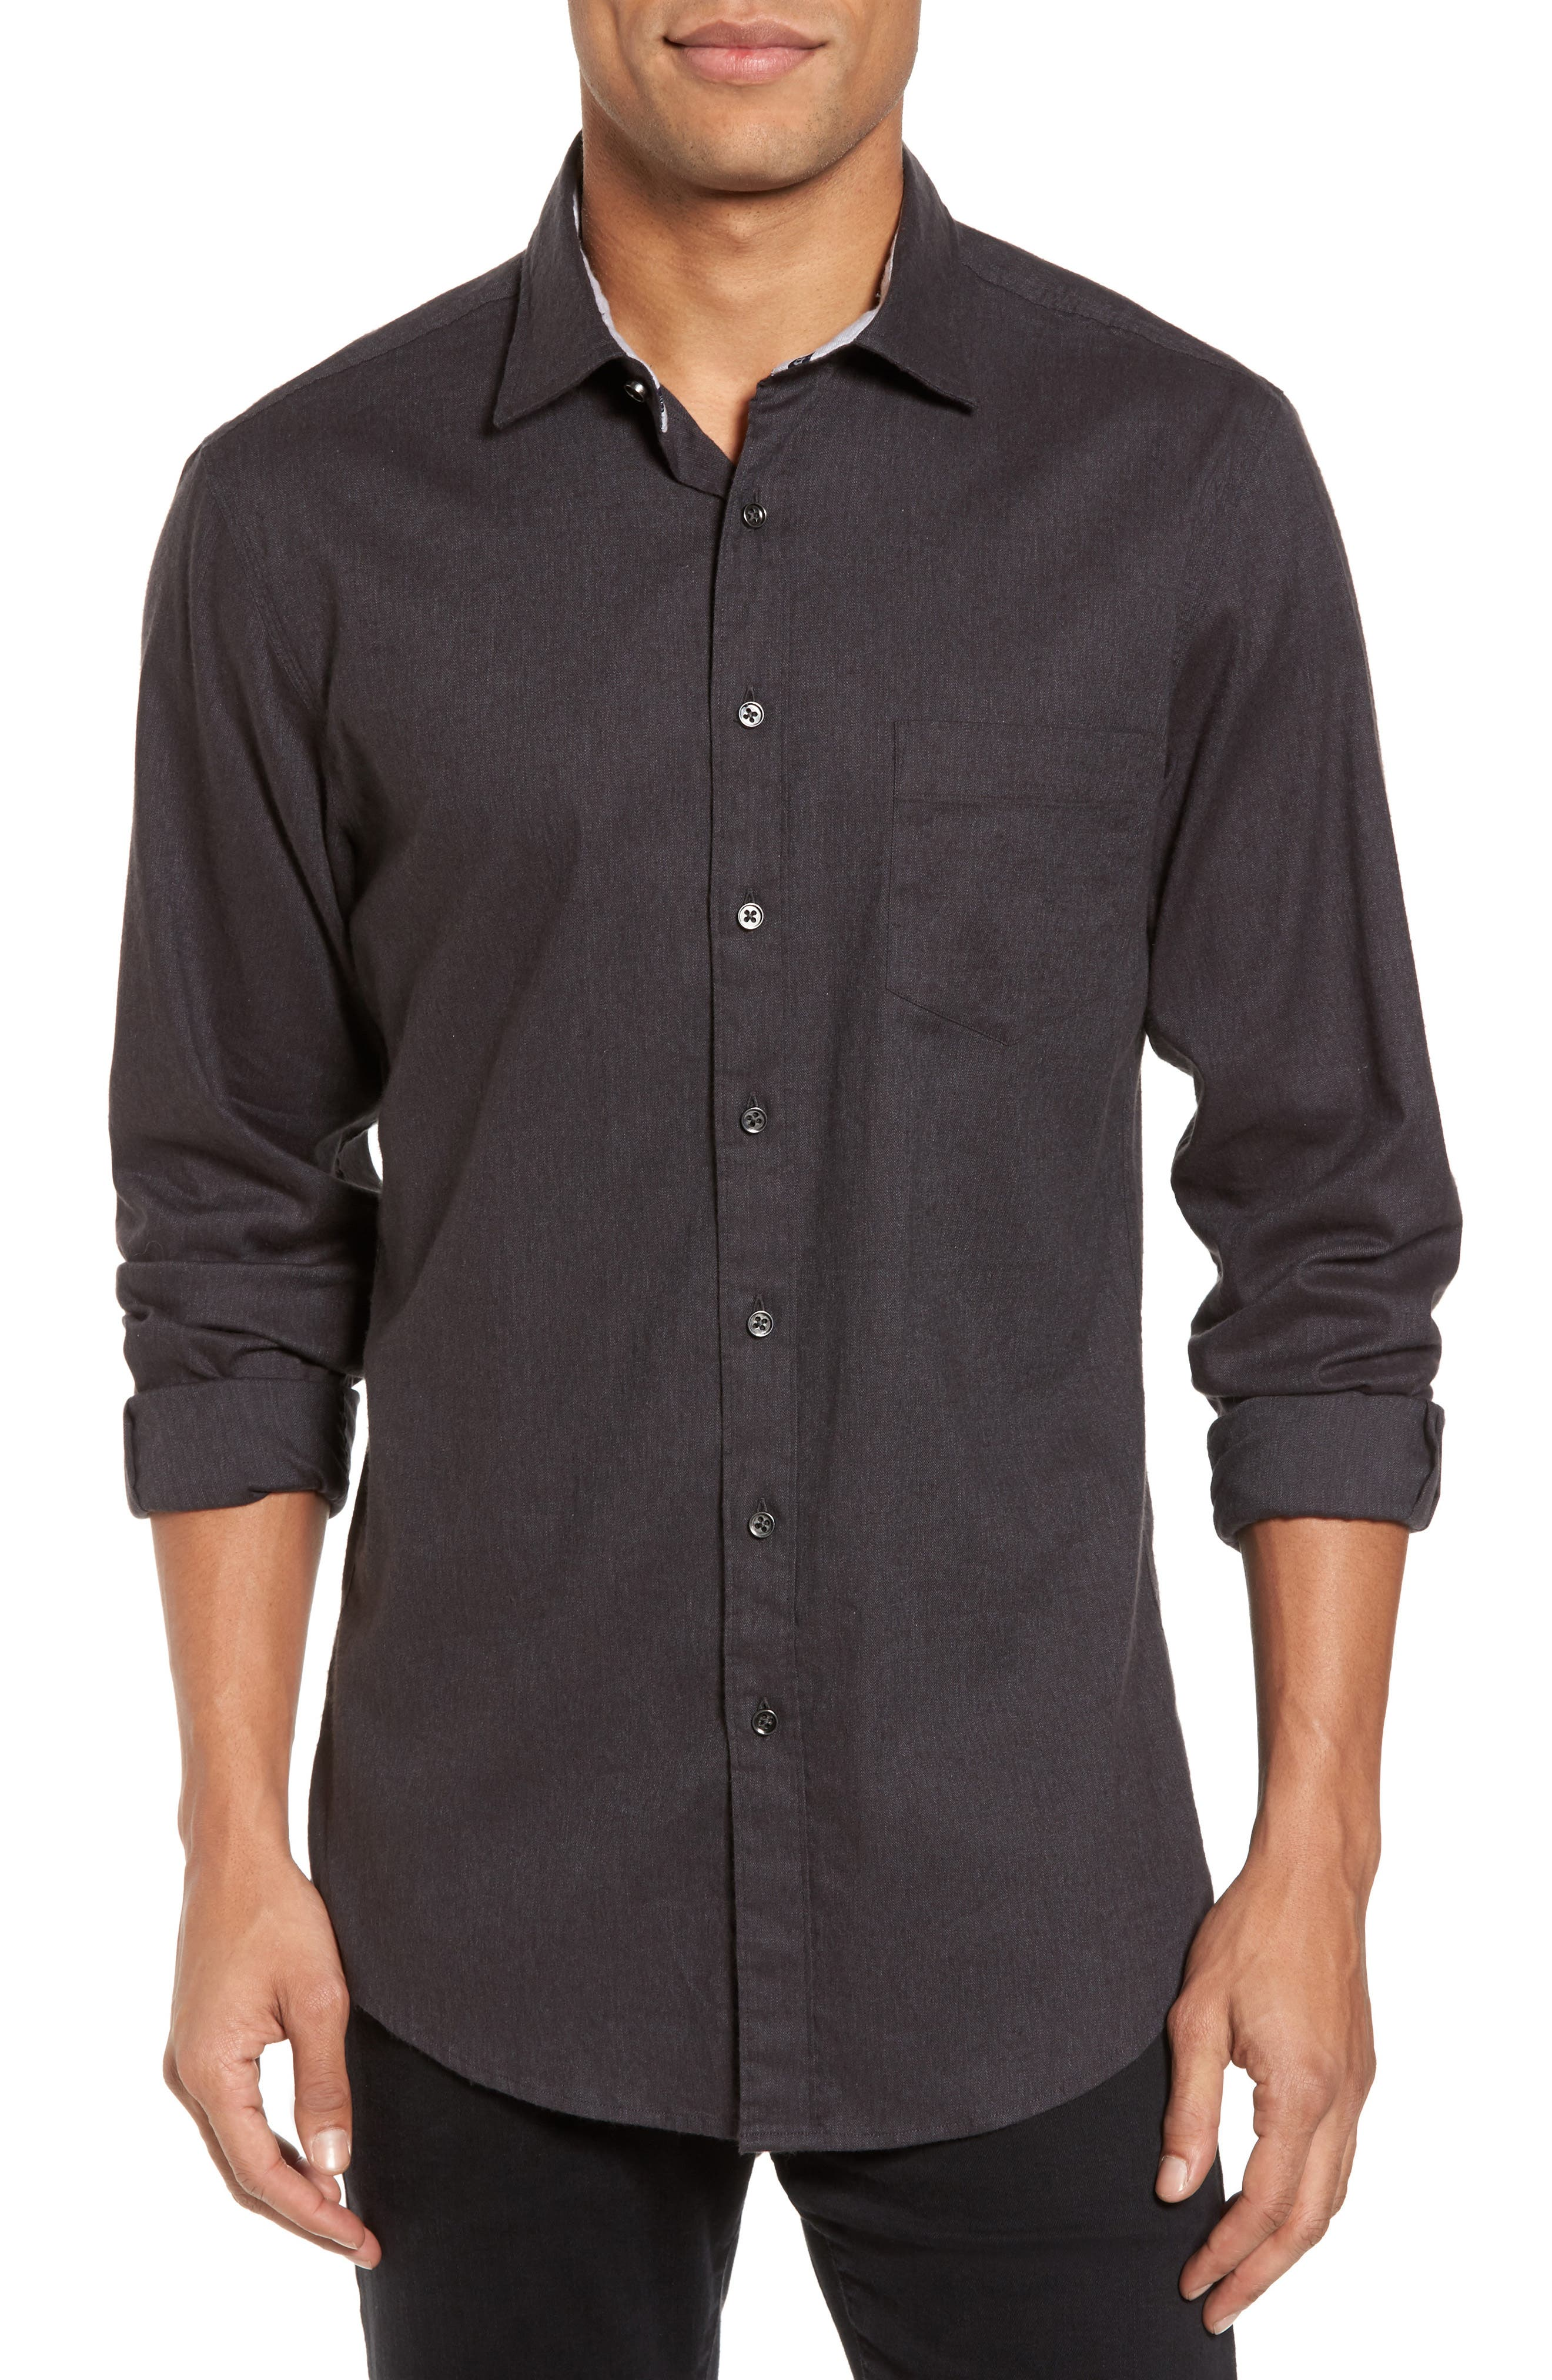 'Sinclair' Trim Fit Brushed Twill Sport Shirt,                             Main thumbnail 1, color,                             021